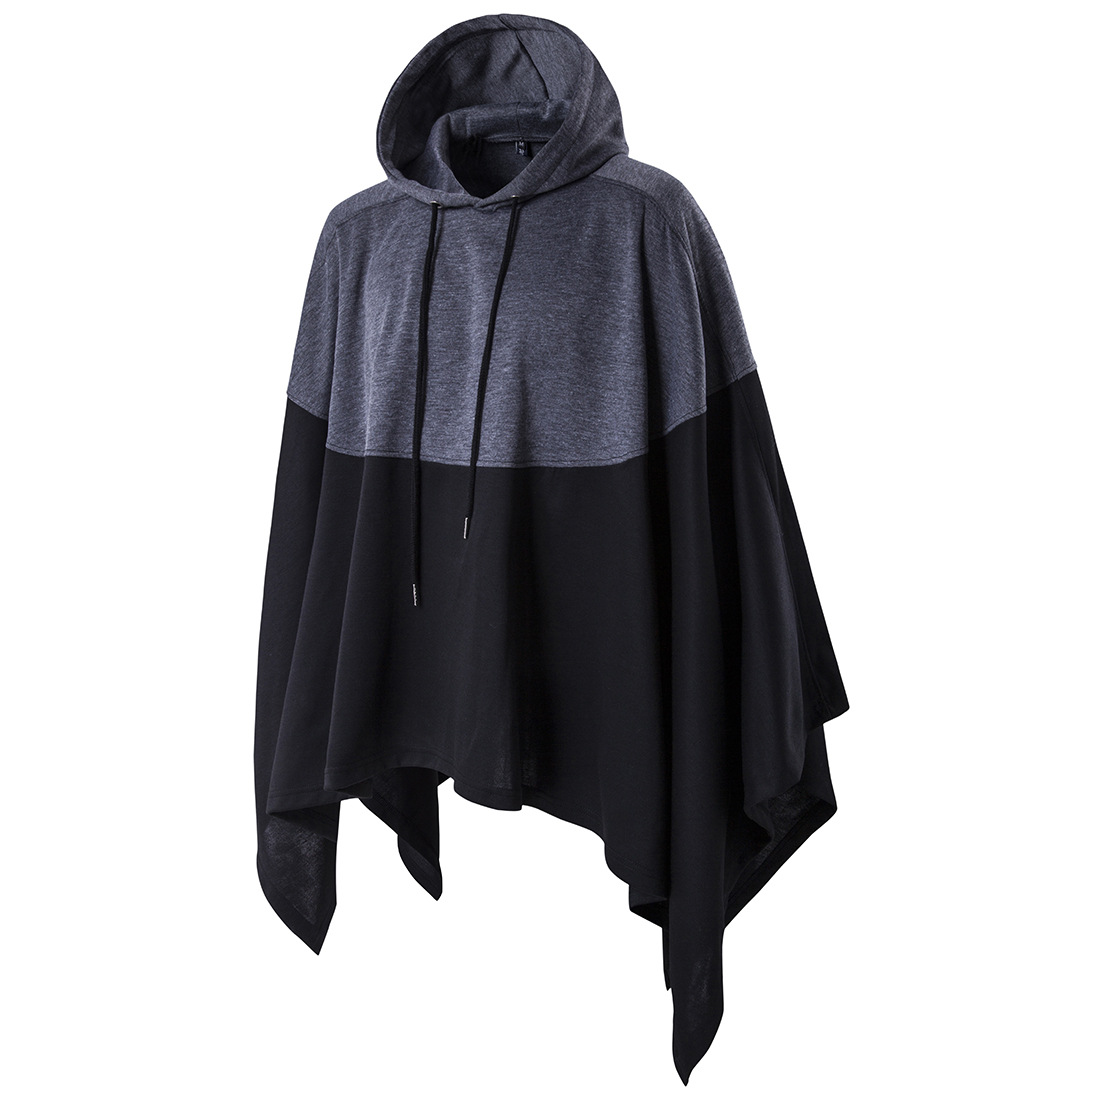 2019 Spring Clothing Korean-style Popular Cloak Hoodie Joint-Style Fashion Man Mantle Coat Black And Gray Xd033